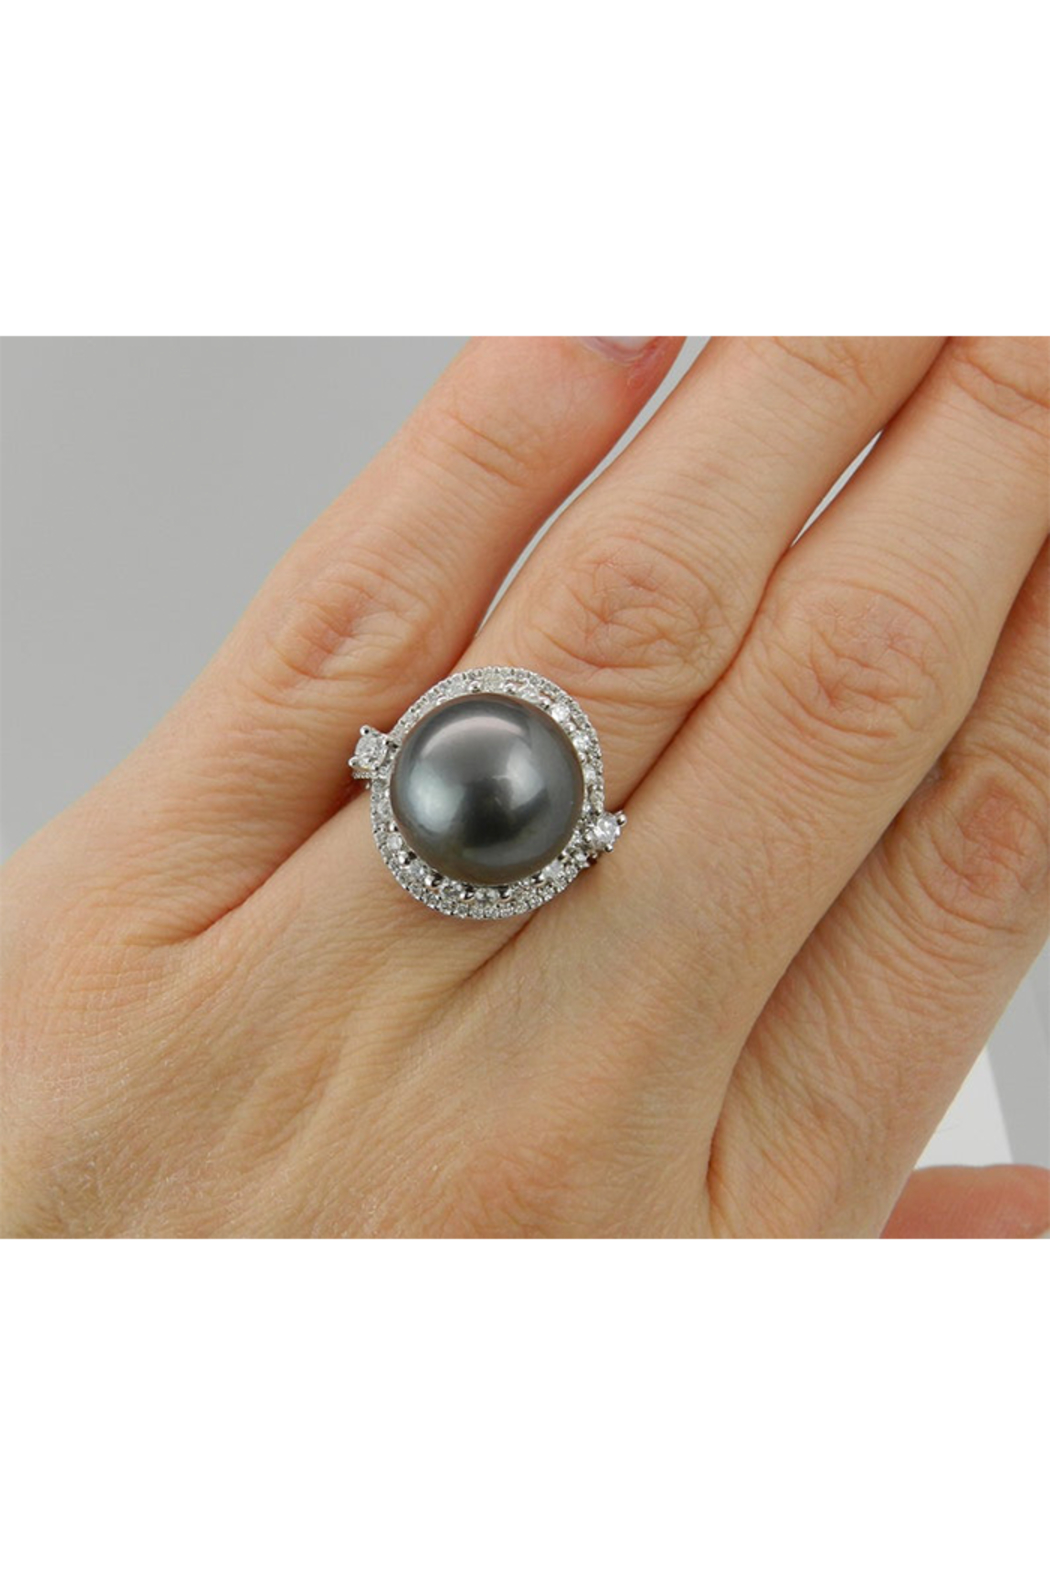 Margolin & Co Black Pearl Ring, Diamond and Pearl Engagement Ring, Tahitian Pearl Ring, 18K White Gold Diamond and Pearl Ring, Diamond Halo Ring - Back Cropped Image